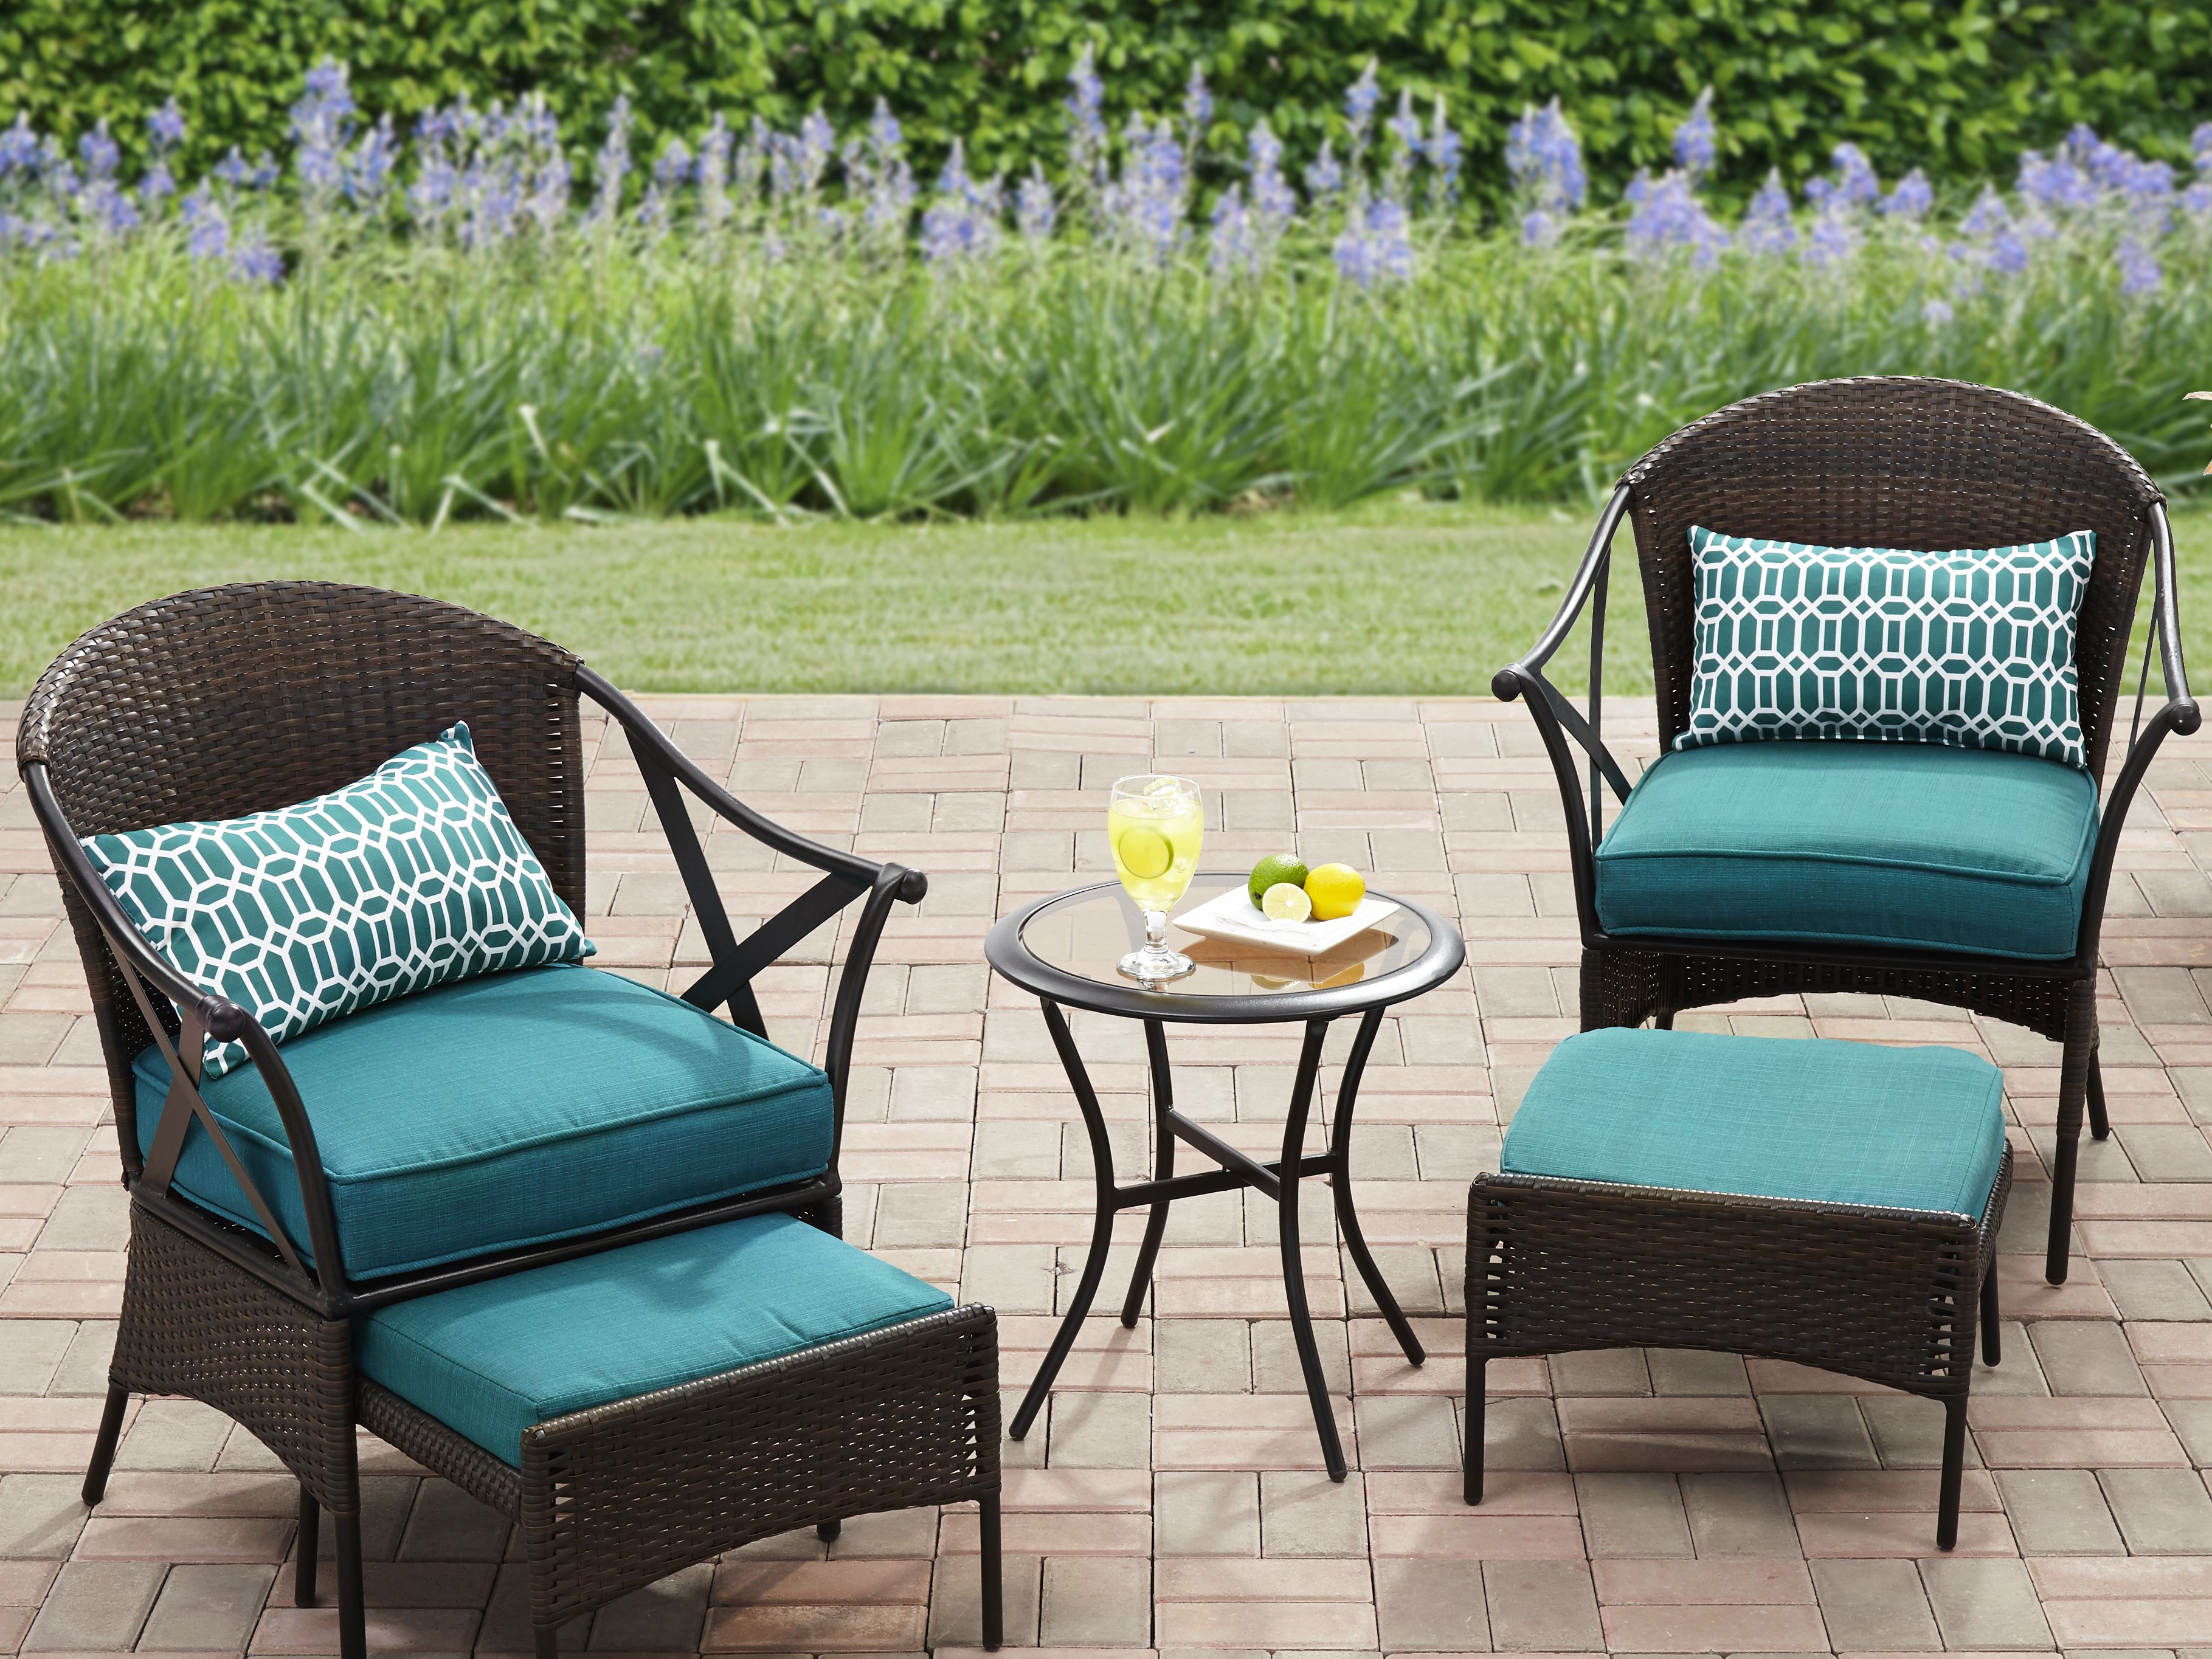 The 9 Best Outdoor Furniture Pieces from Walmart in 9